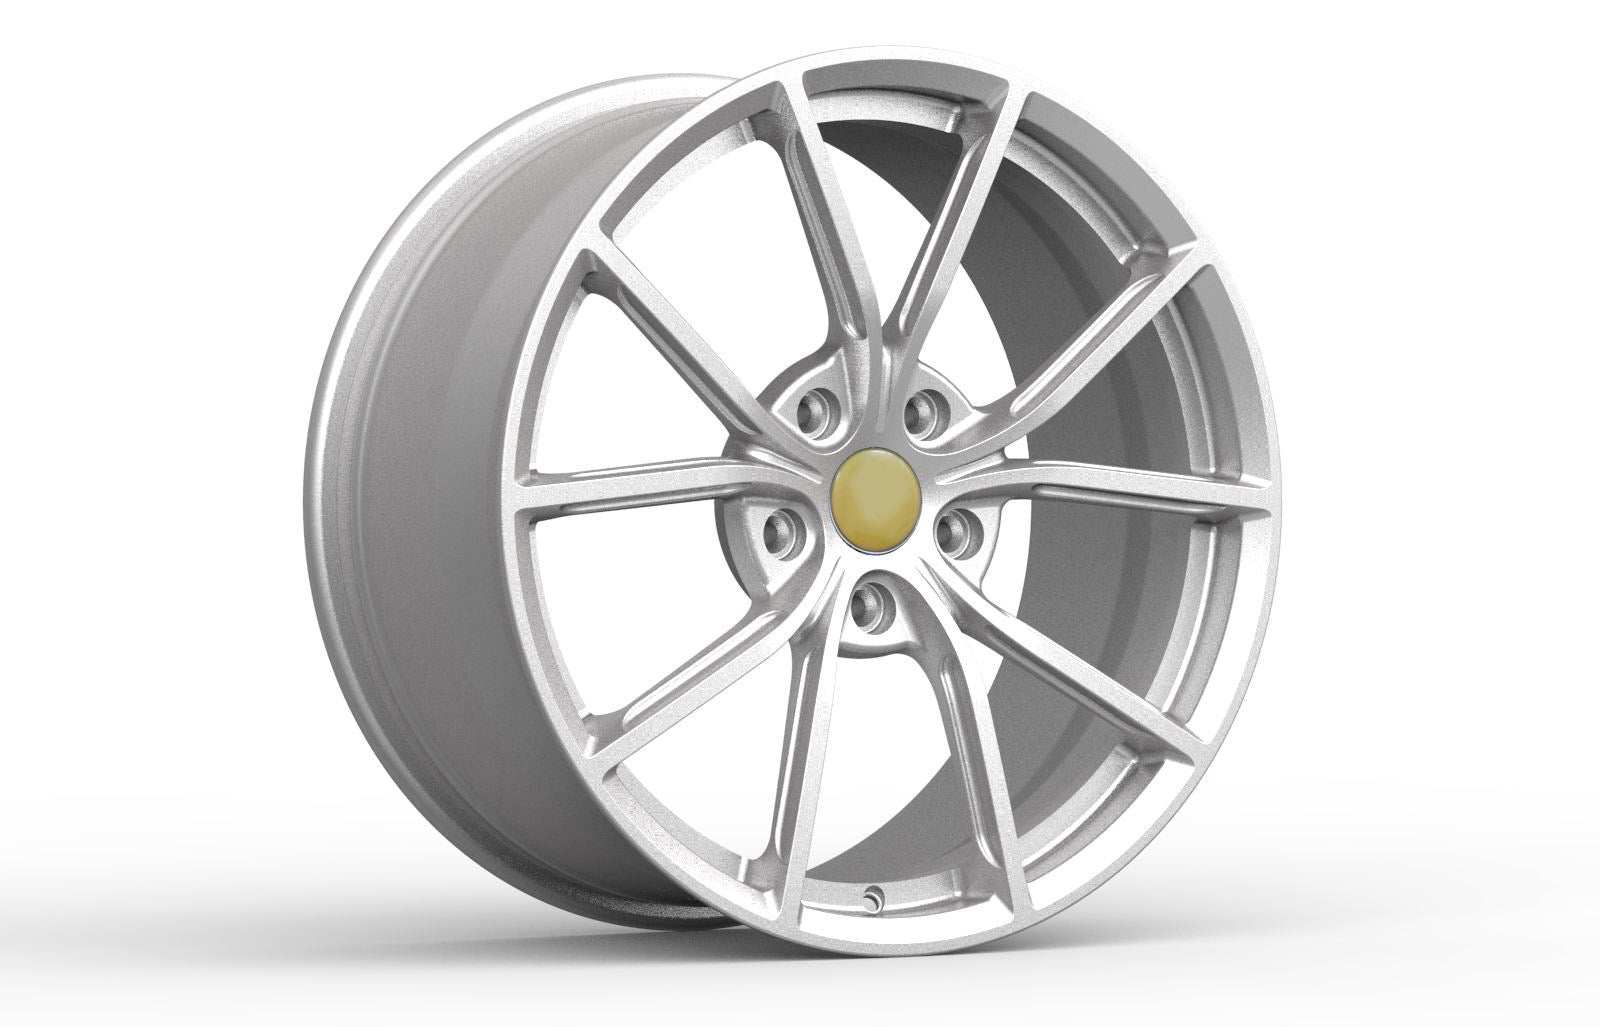 FP 221 - Aftermarket Custom Made Fully Forged Wheels Set To Fit Most Ferrari